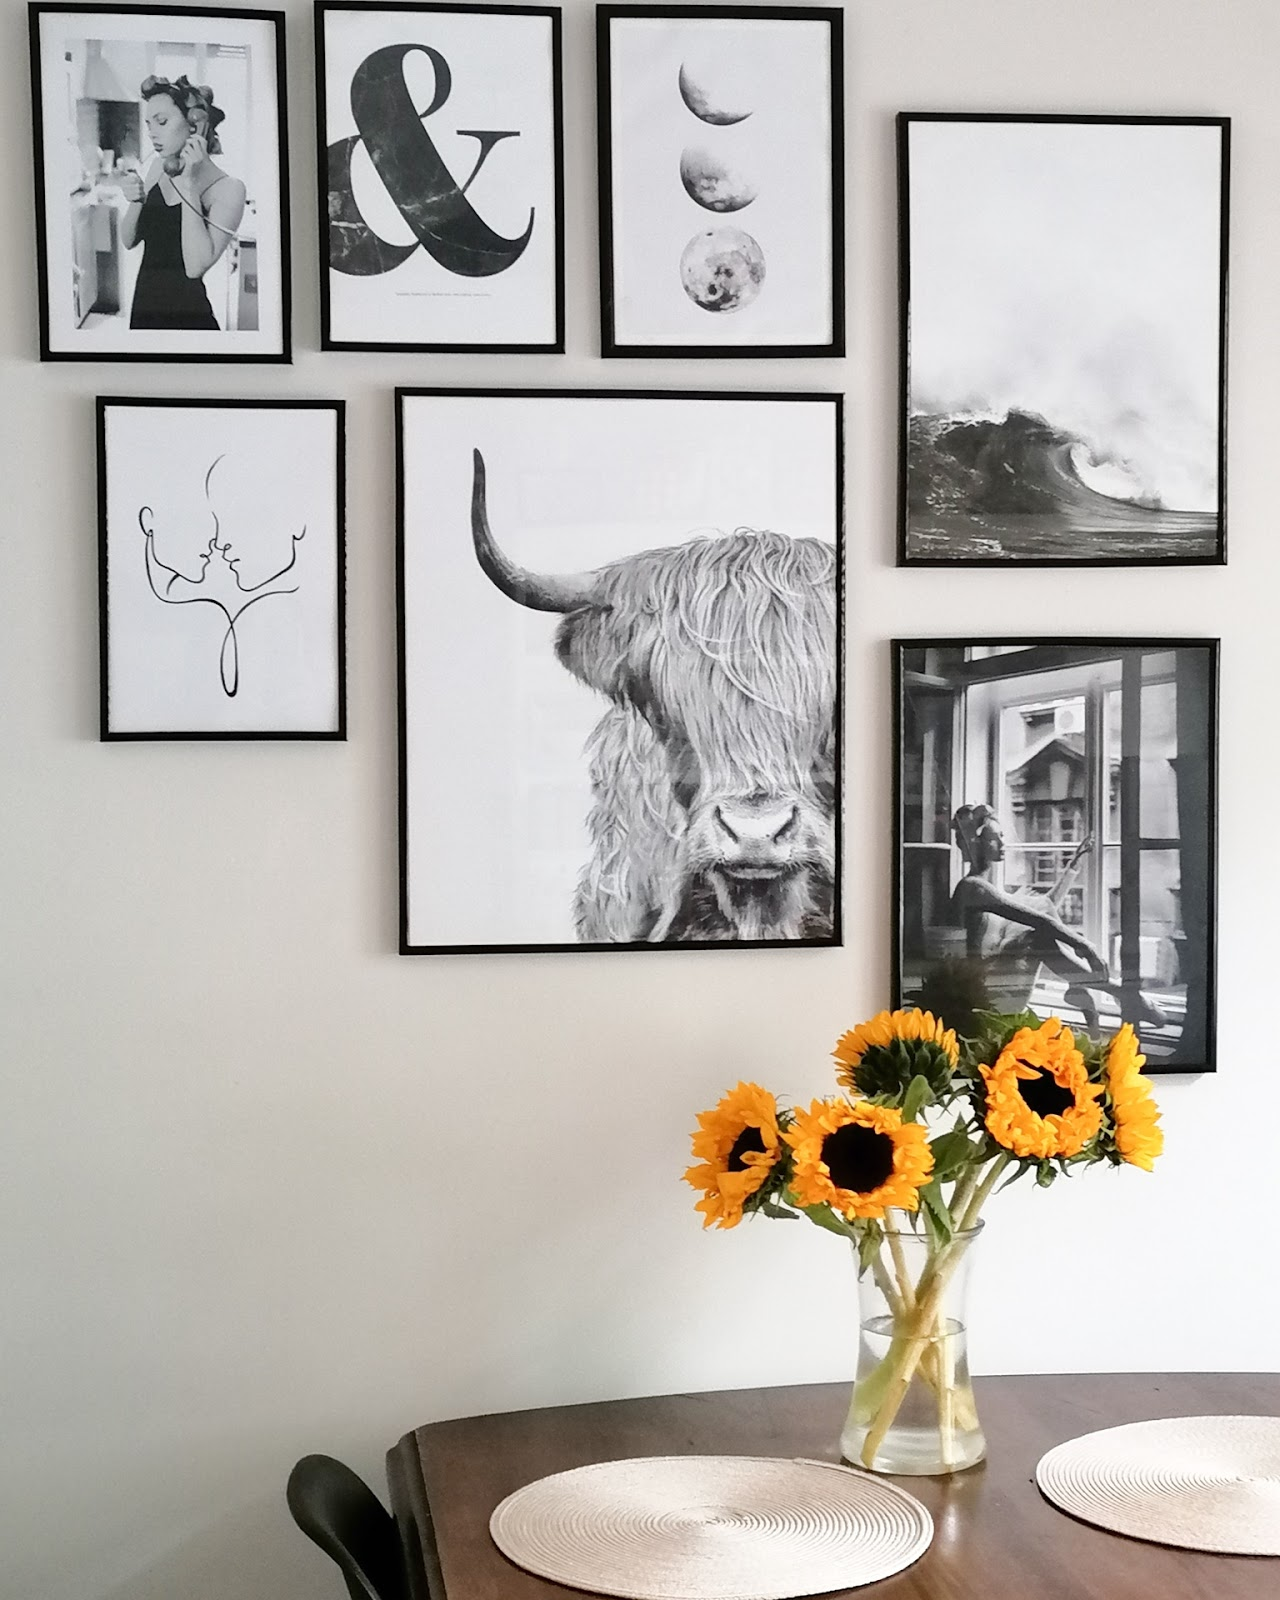 My tips for creating a gallery wall